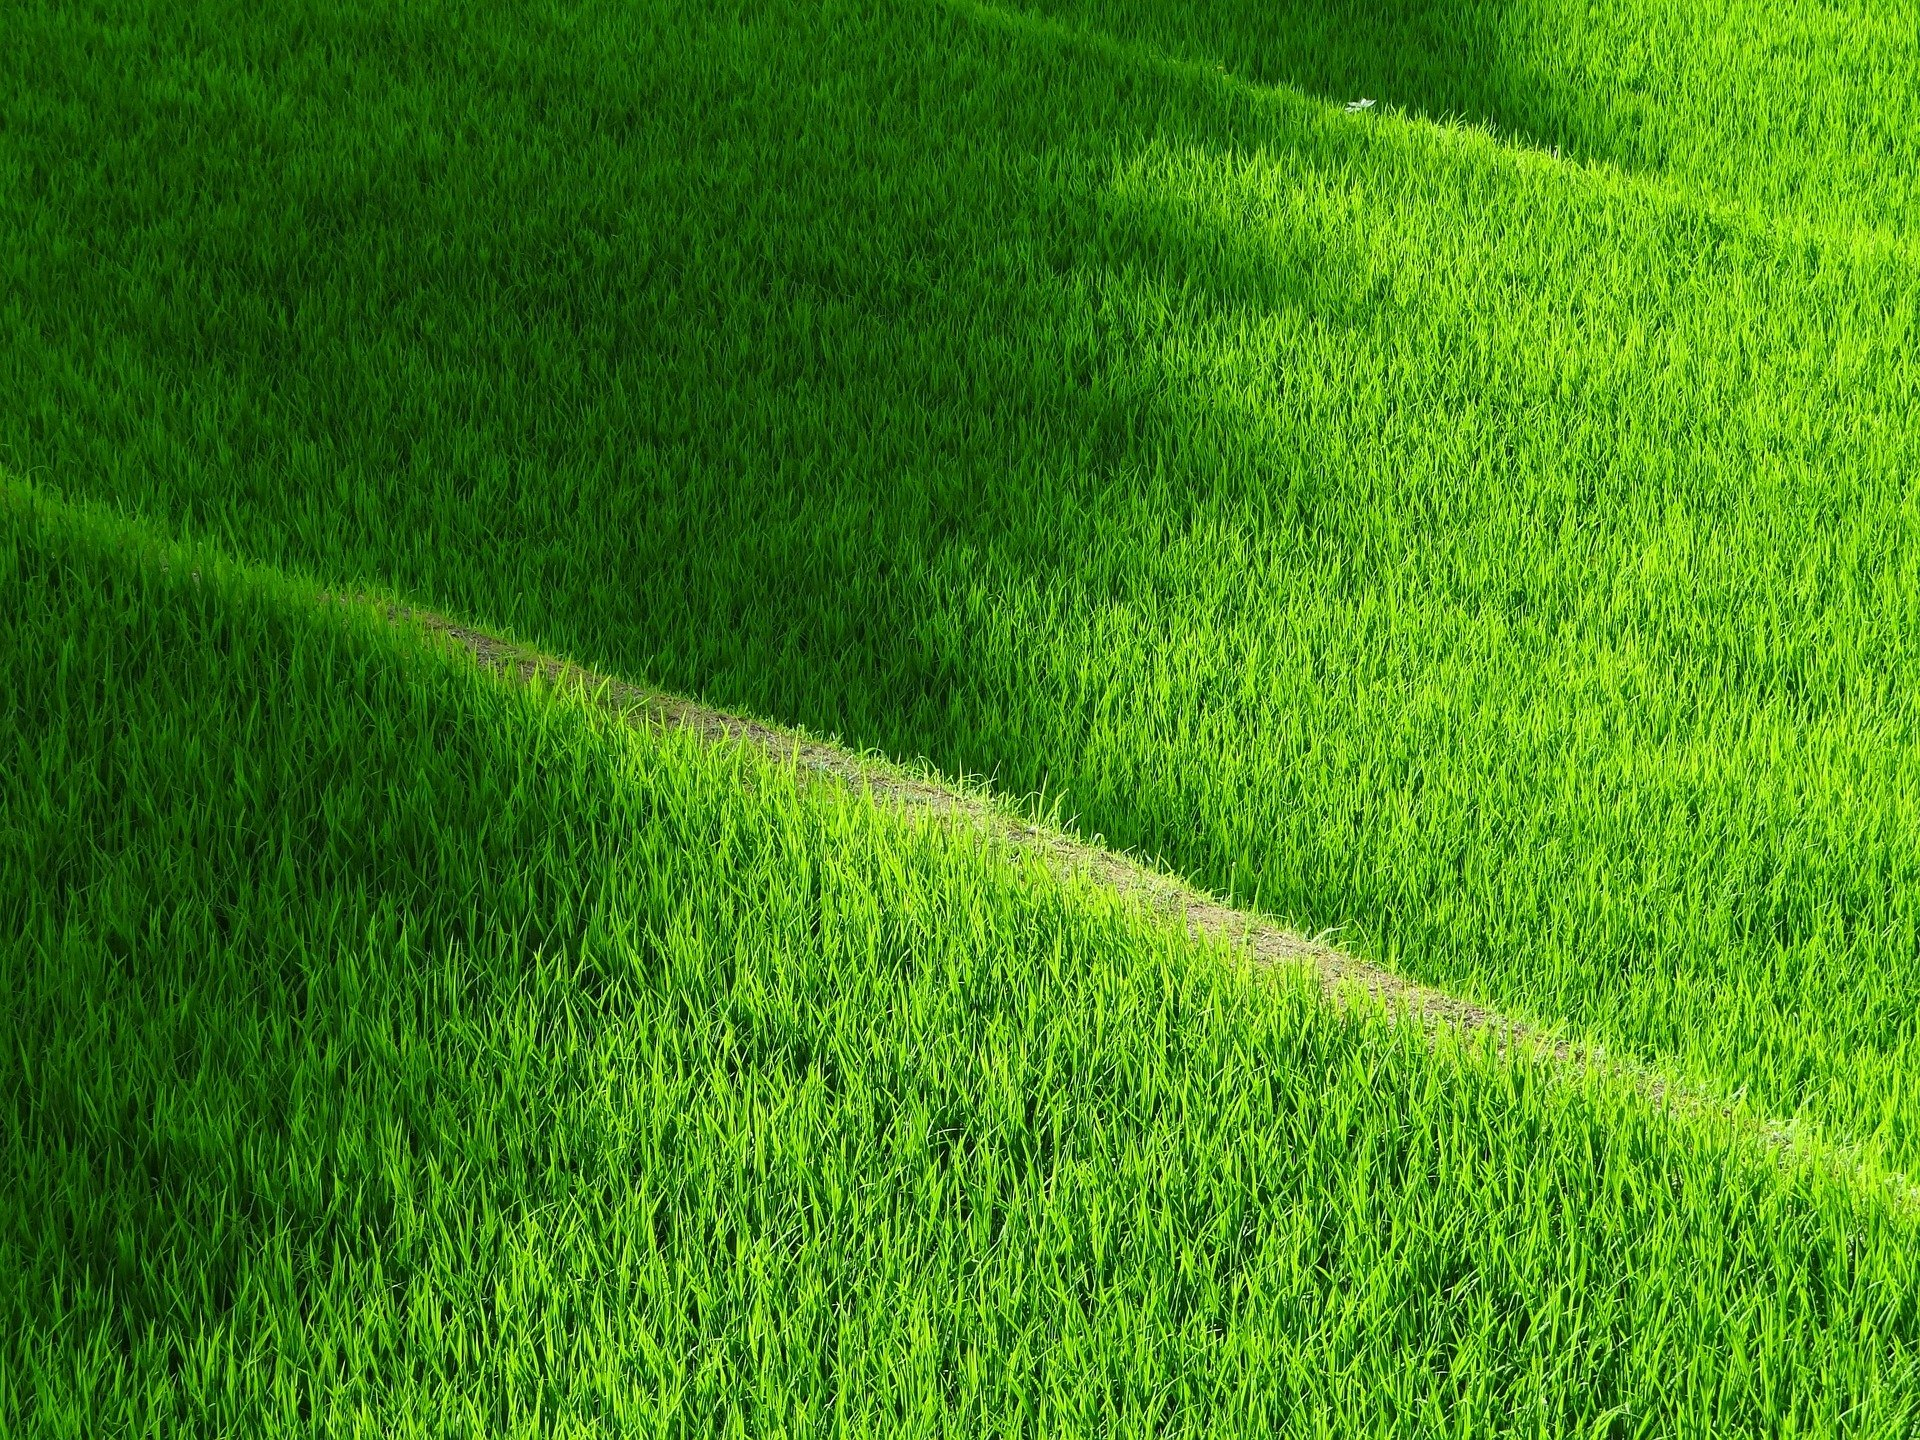 images of manicured grass